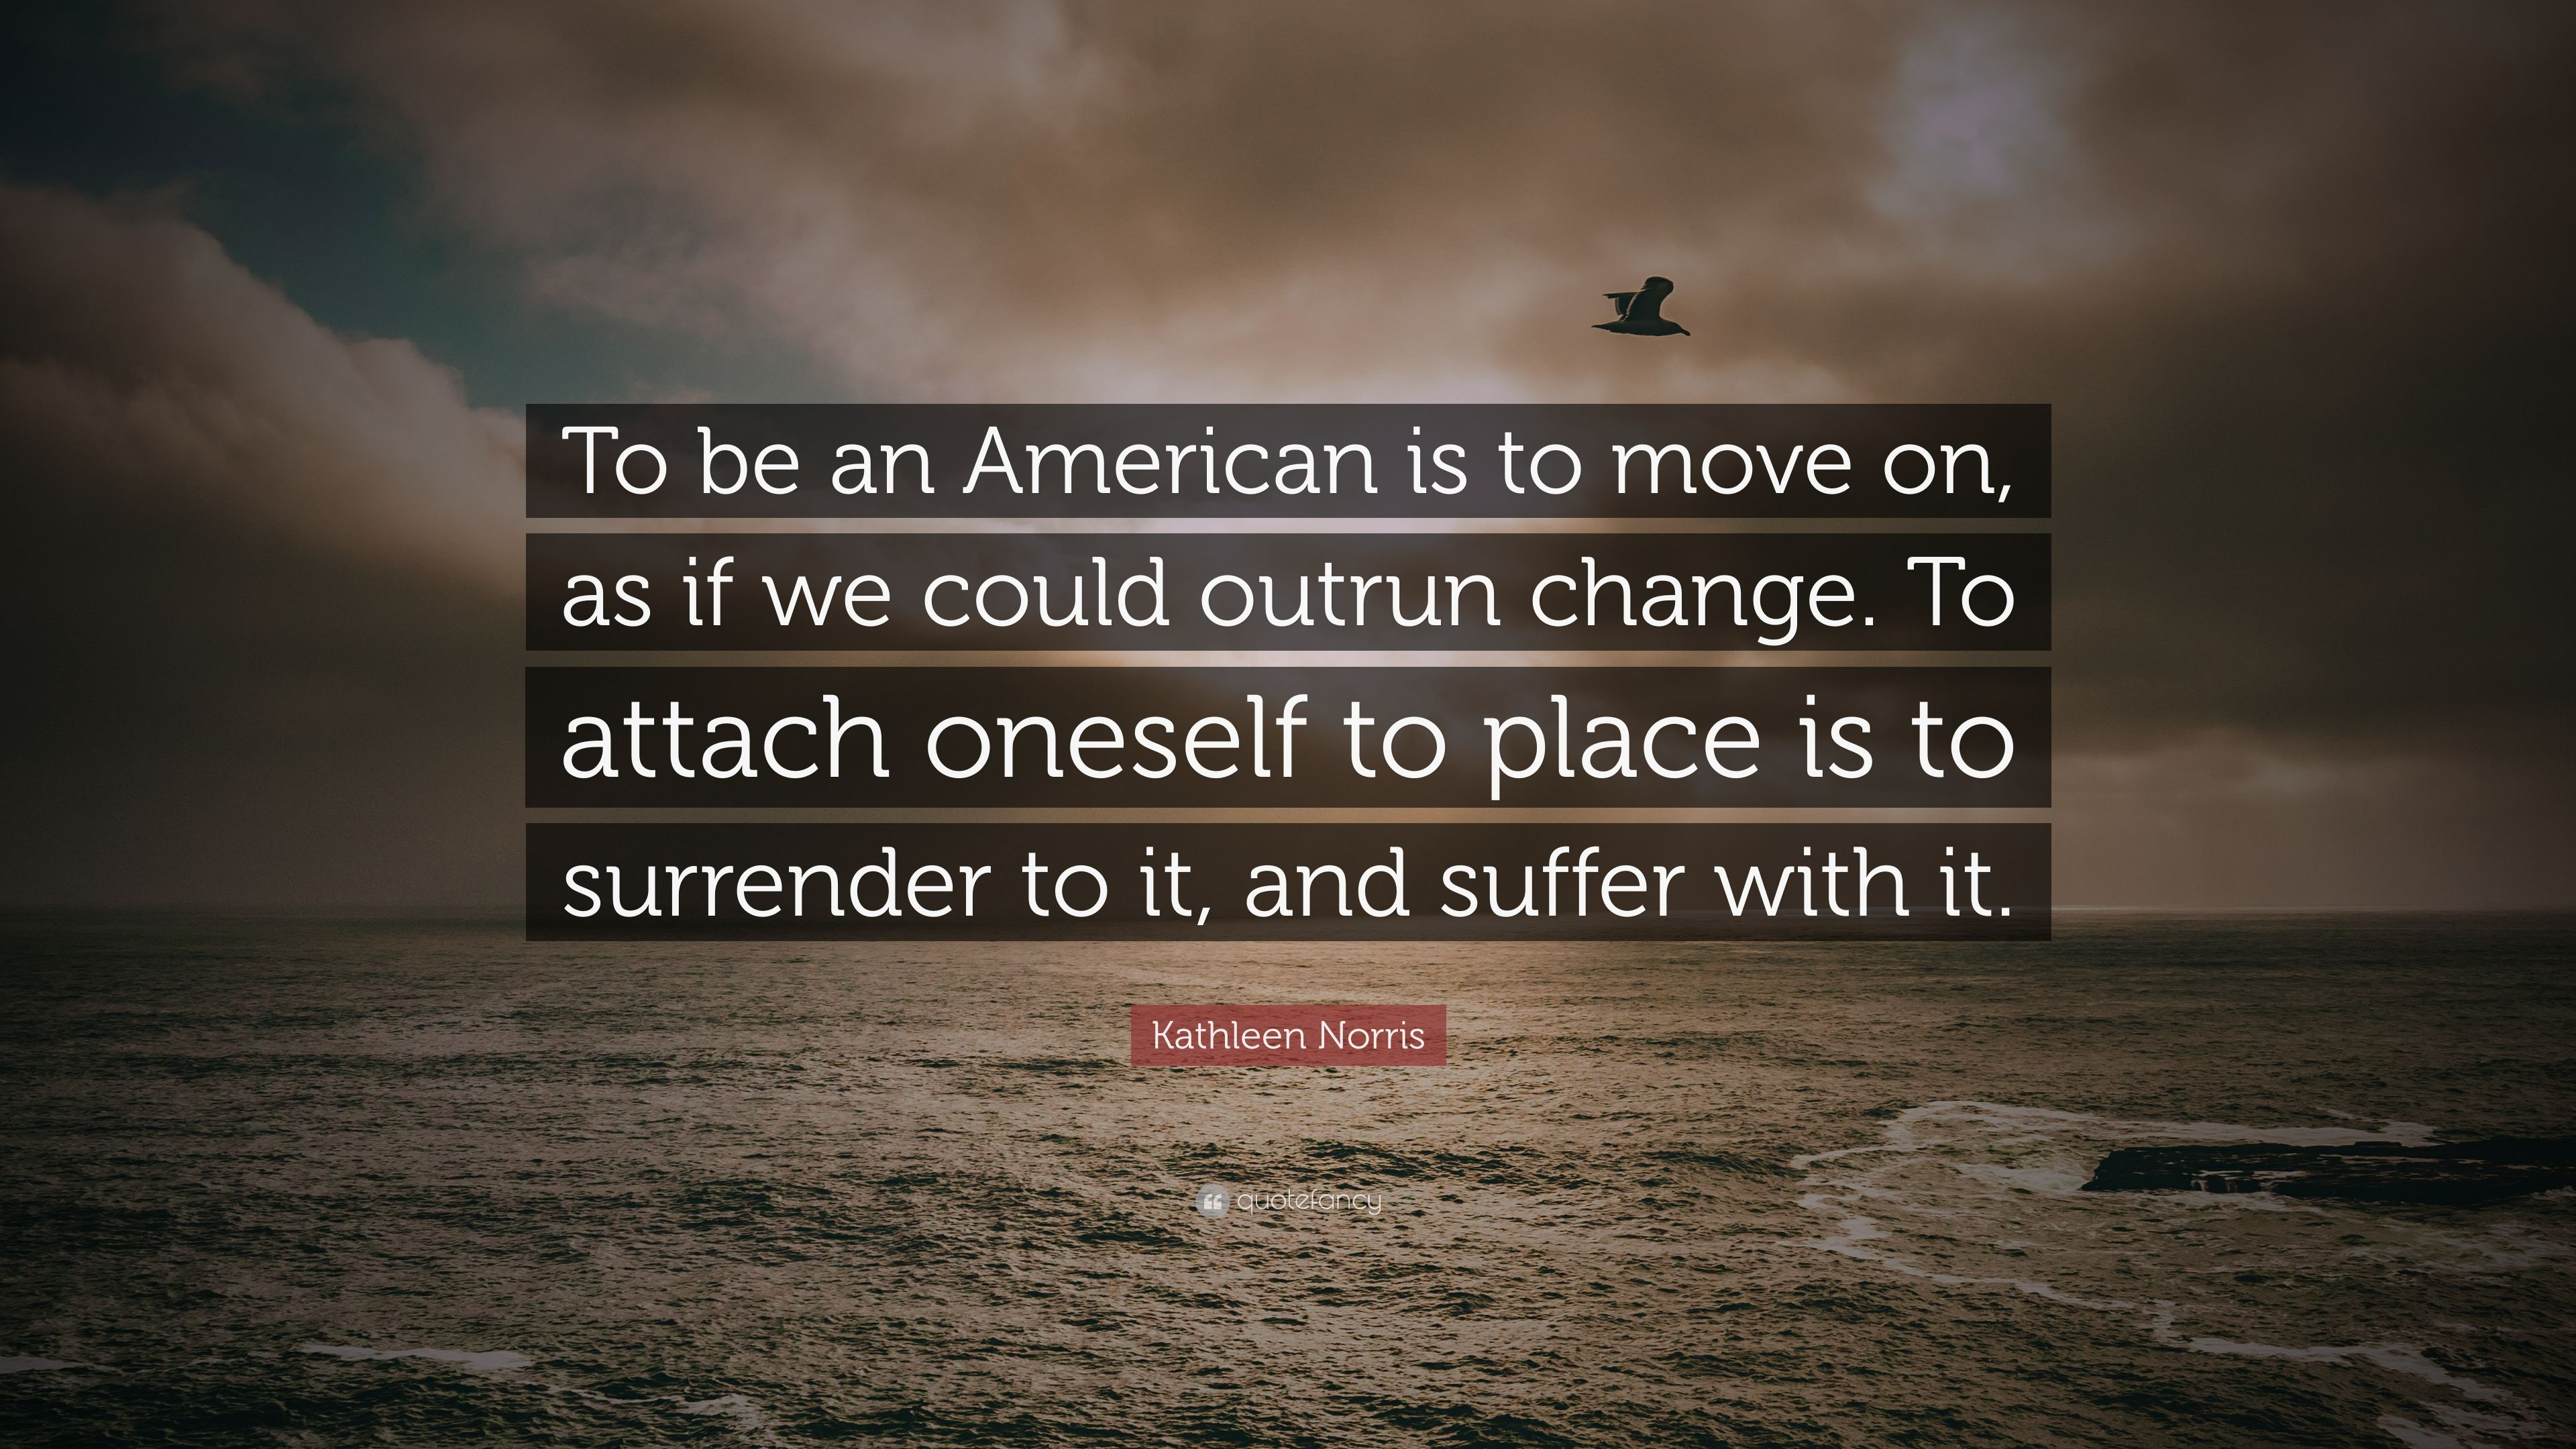 Kathleen Norris Quote To Be An American Is To Move On As If We